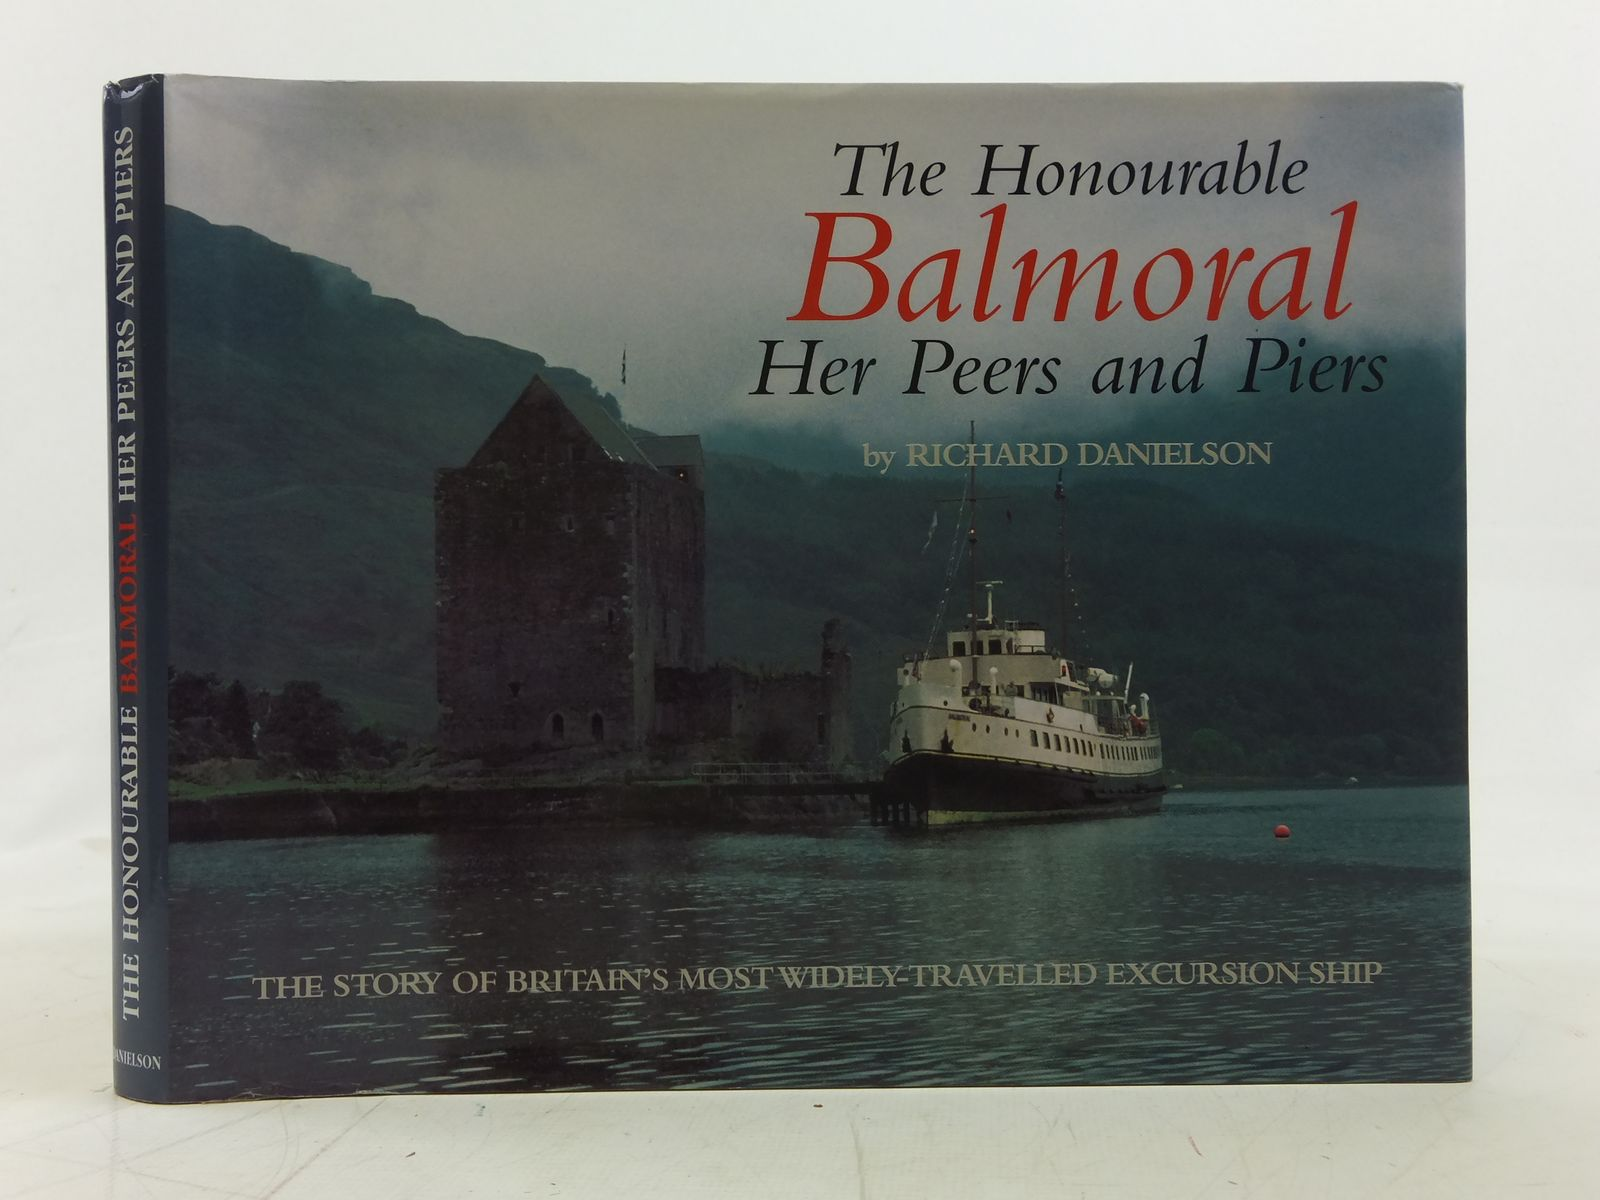 Photo of THE HONOURABLE BALMORAL HER PEERS AMD PIERS written by Danielson, Richard published by Maritime Publications (STOCK CODE: 2115735)  for sale by Stella & Rose's Books